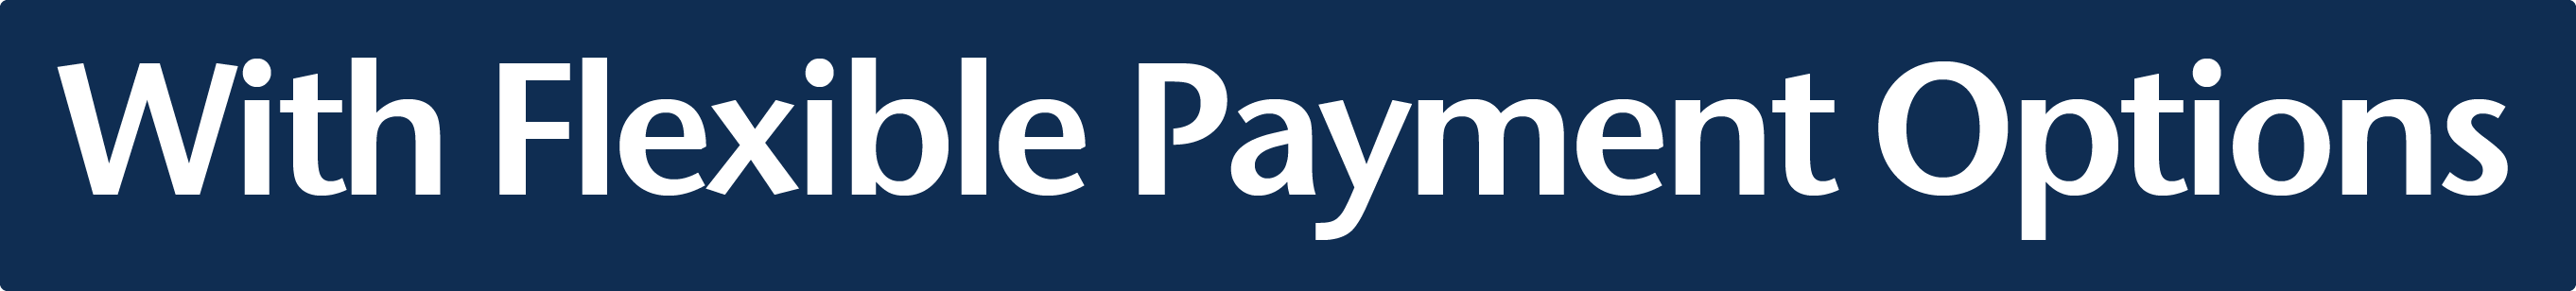 with flexible payment options